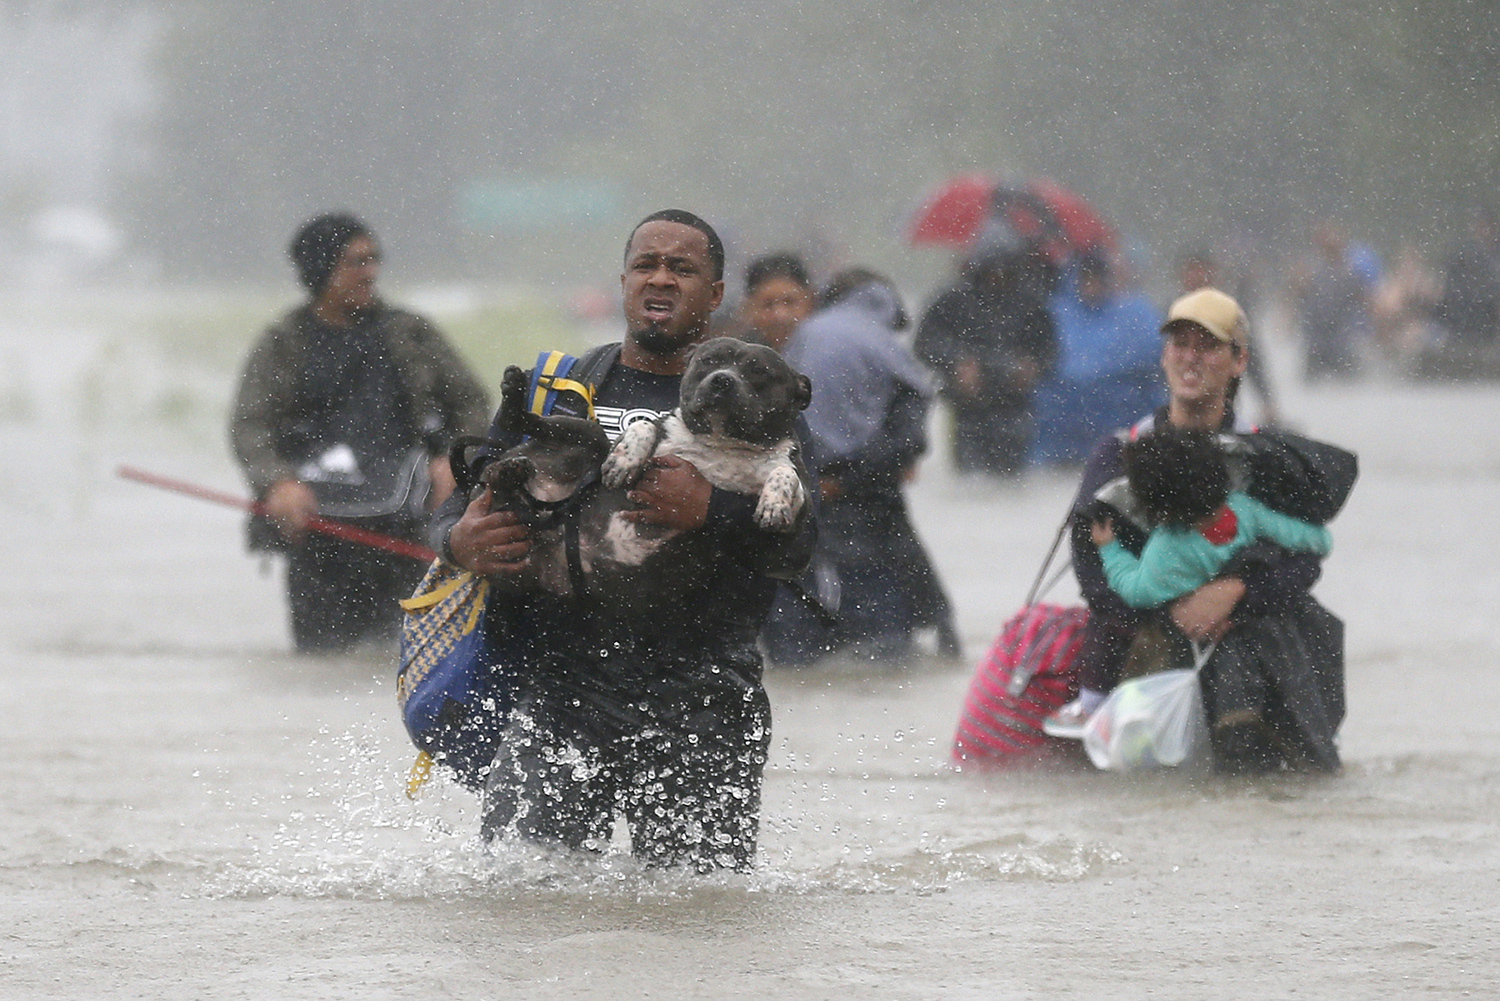 Keeping Your Pet Safe During Natural Disasters - Communikait by Kait Hanson